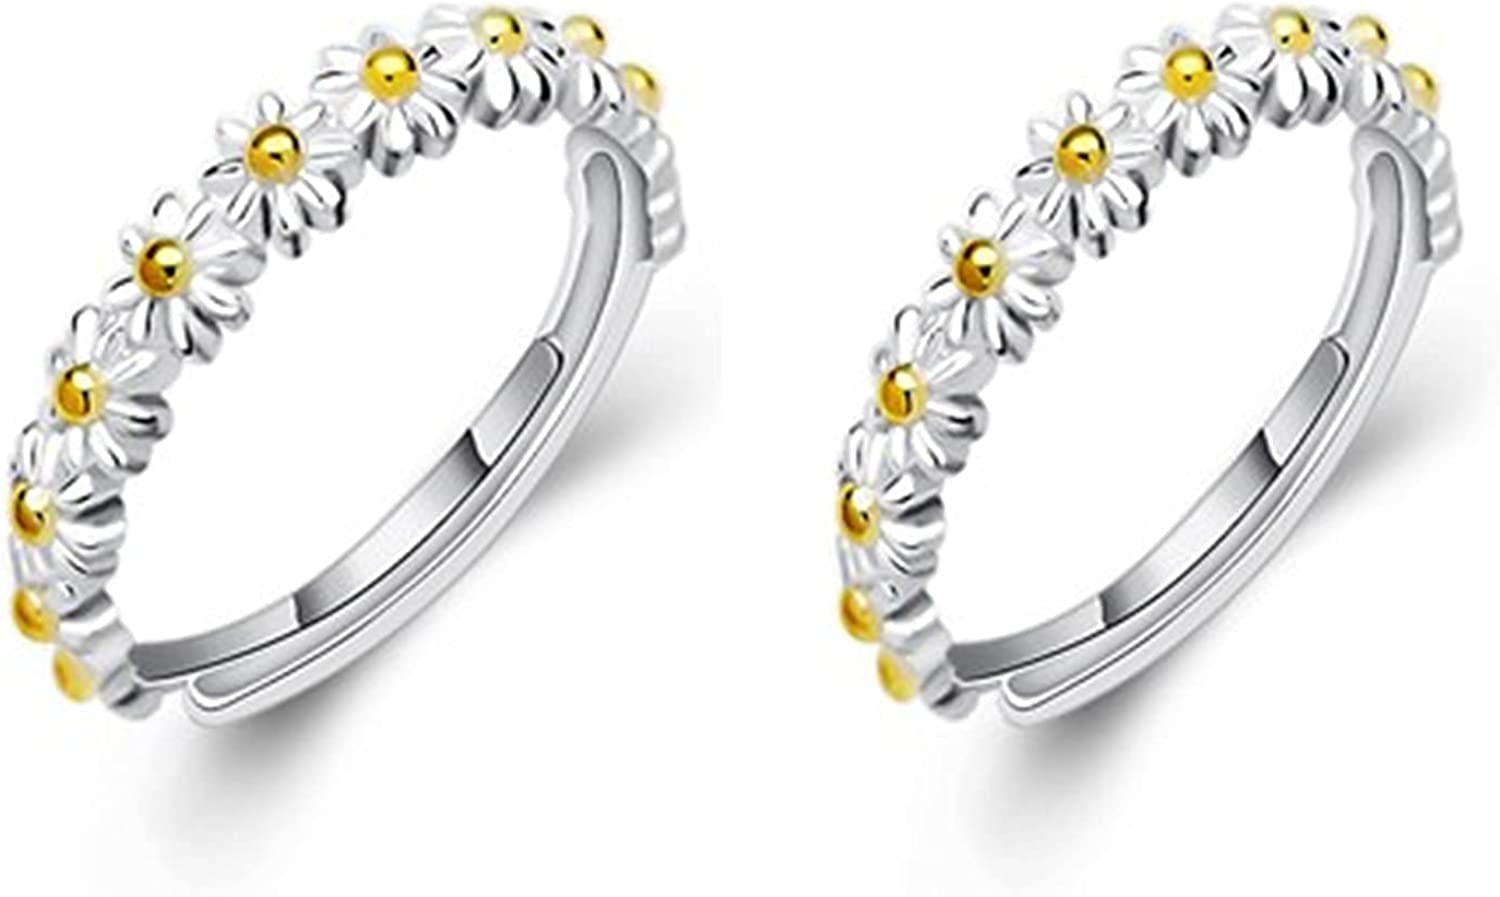 2 Pcs Little Daisy Flower Ring - I Think About You Ever Daisy Ring Wedding Band Ring Personality Adjustable Hawaiian Wish Promise Jewelry for Women Girls